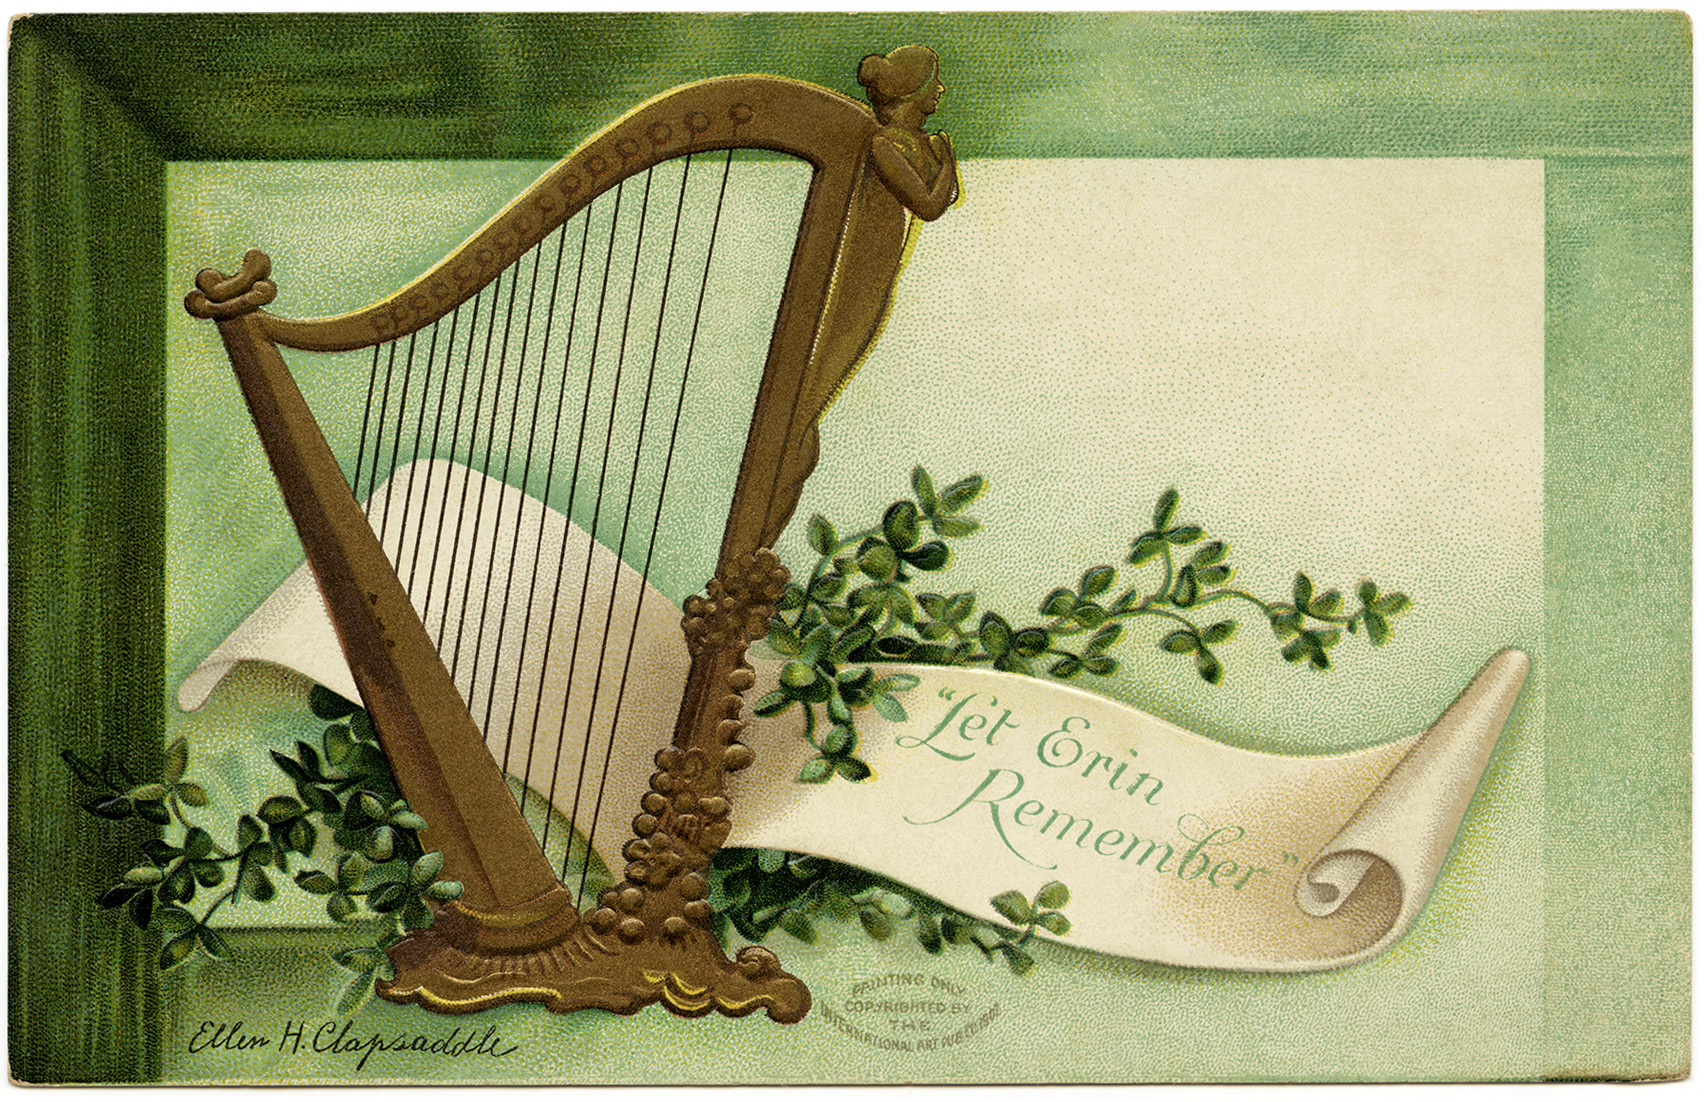 St Patrick's Day postcard, let erin remember, Ellen Clapsaddle, vintage postcard printable, free vintage ephemera, Irish harp shamrock clip art